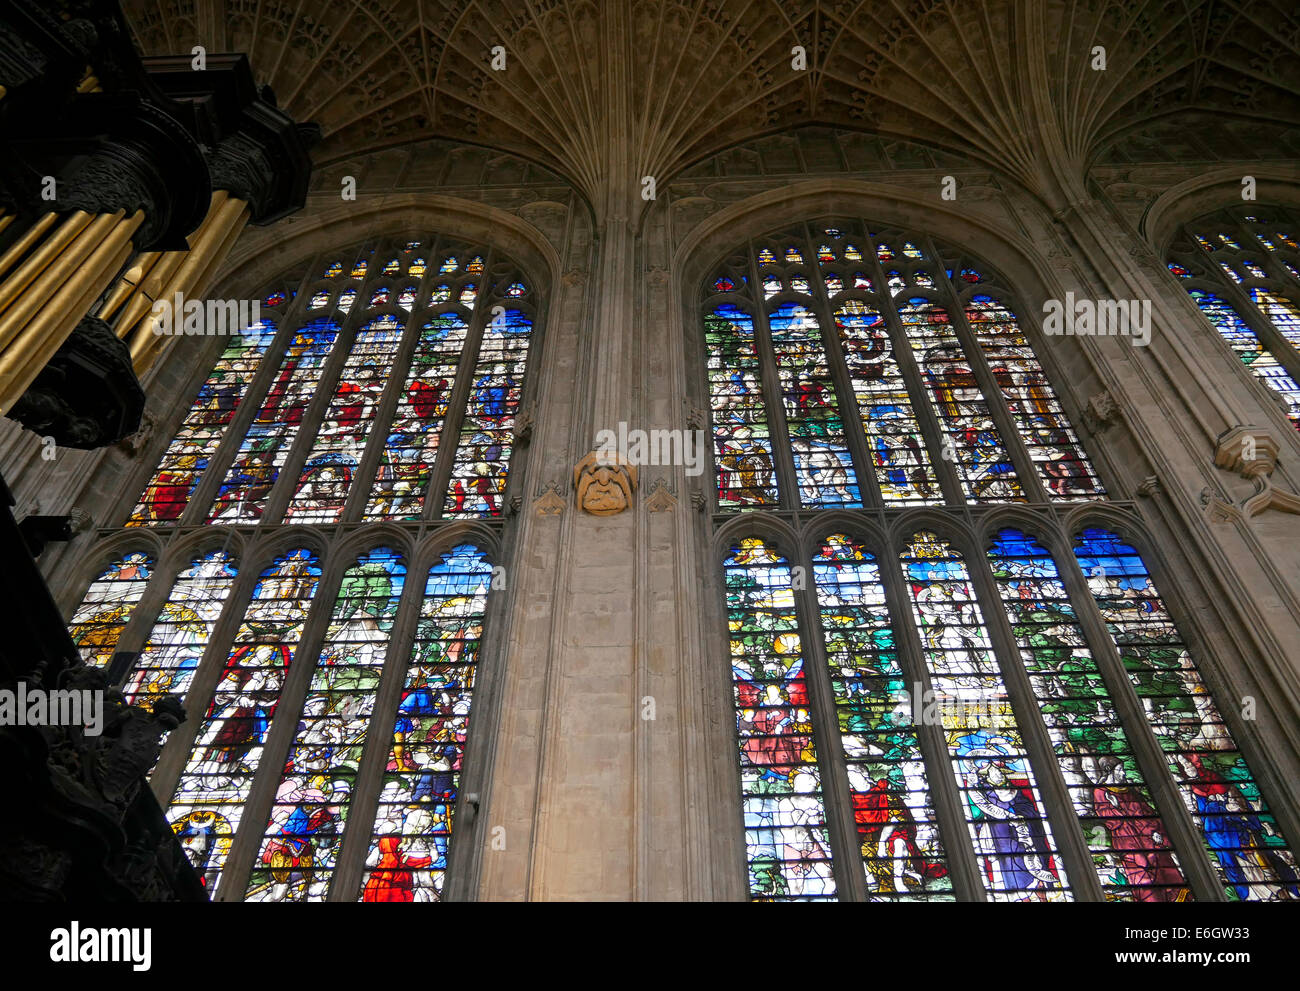 interior of kings college chapel cambridge england showing the chapel organ and stained glass windows - Stock Image